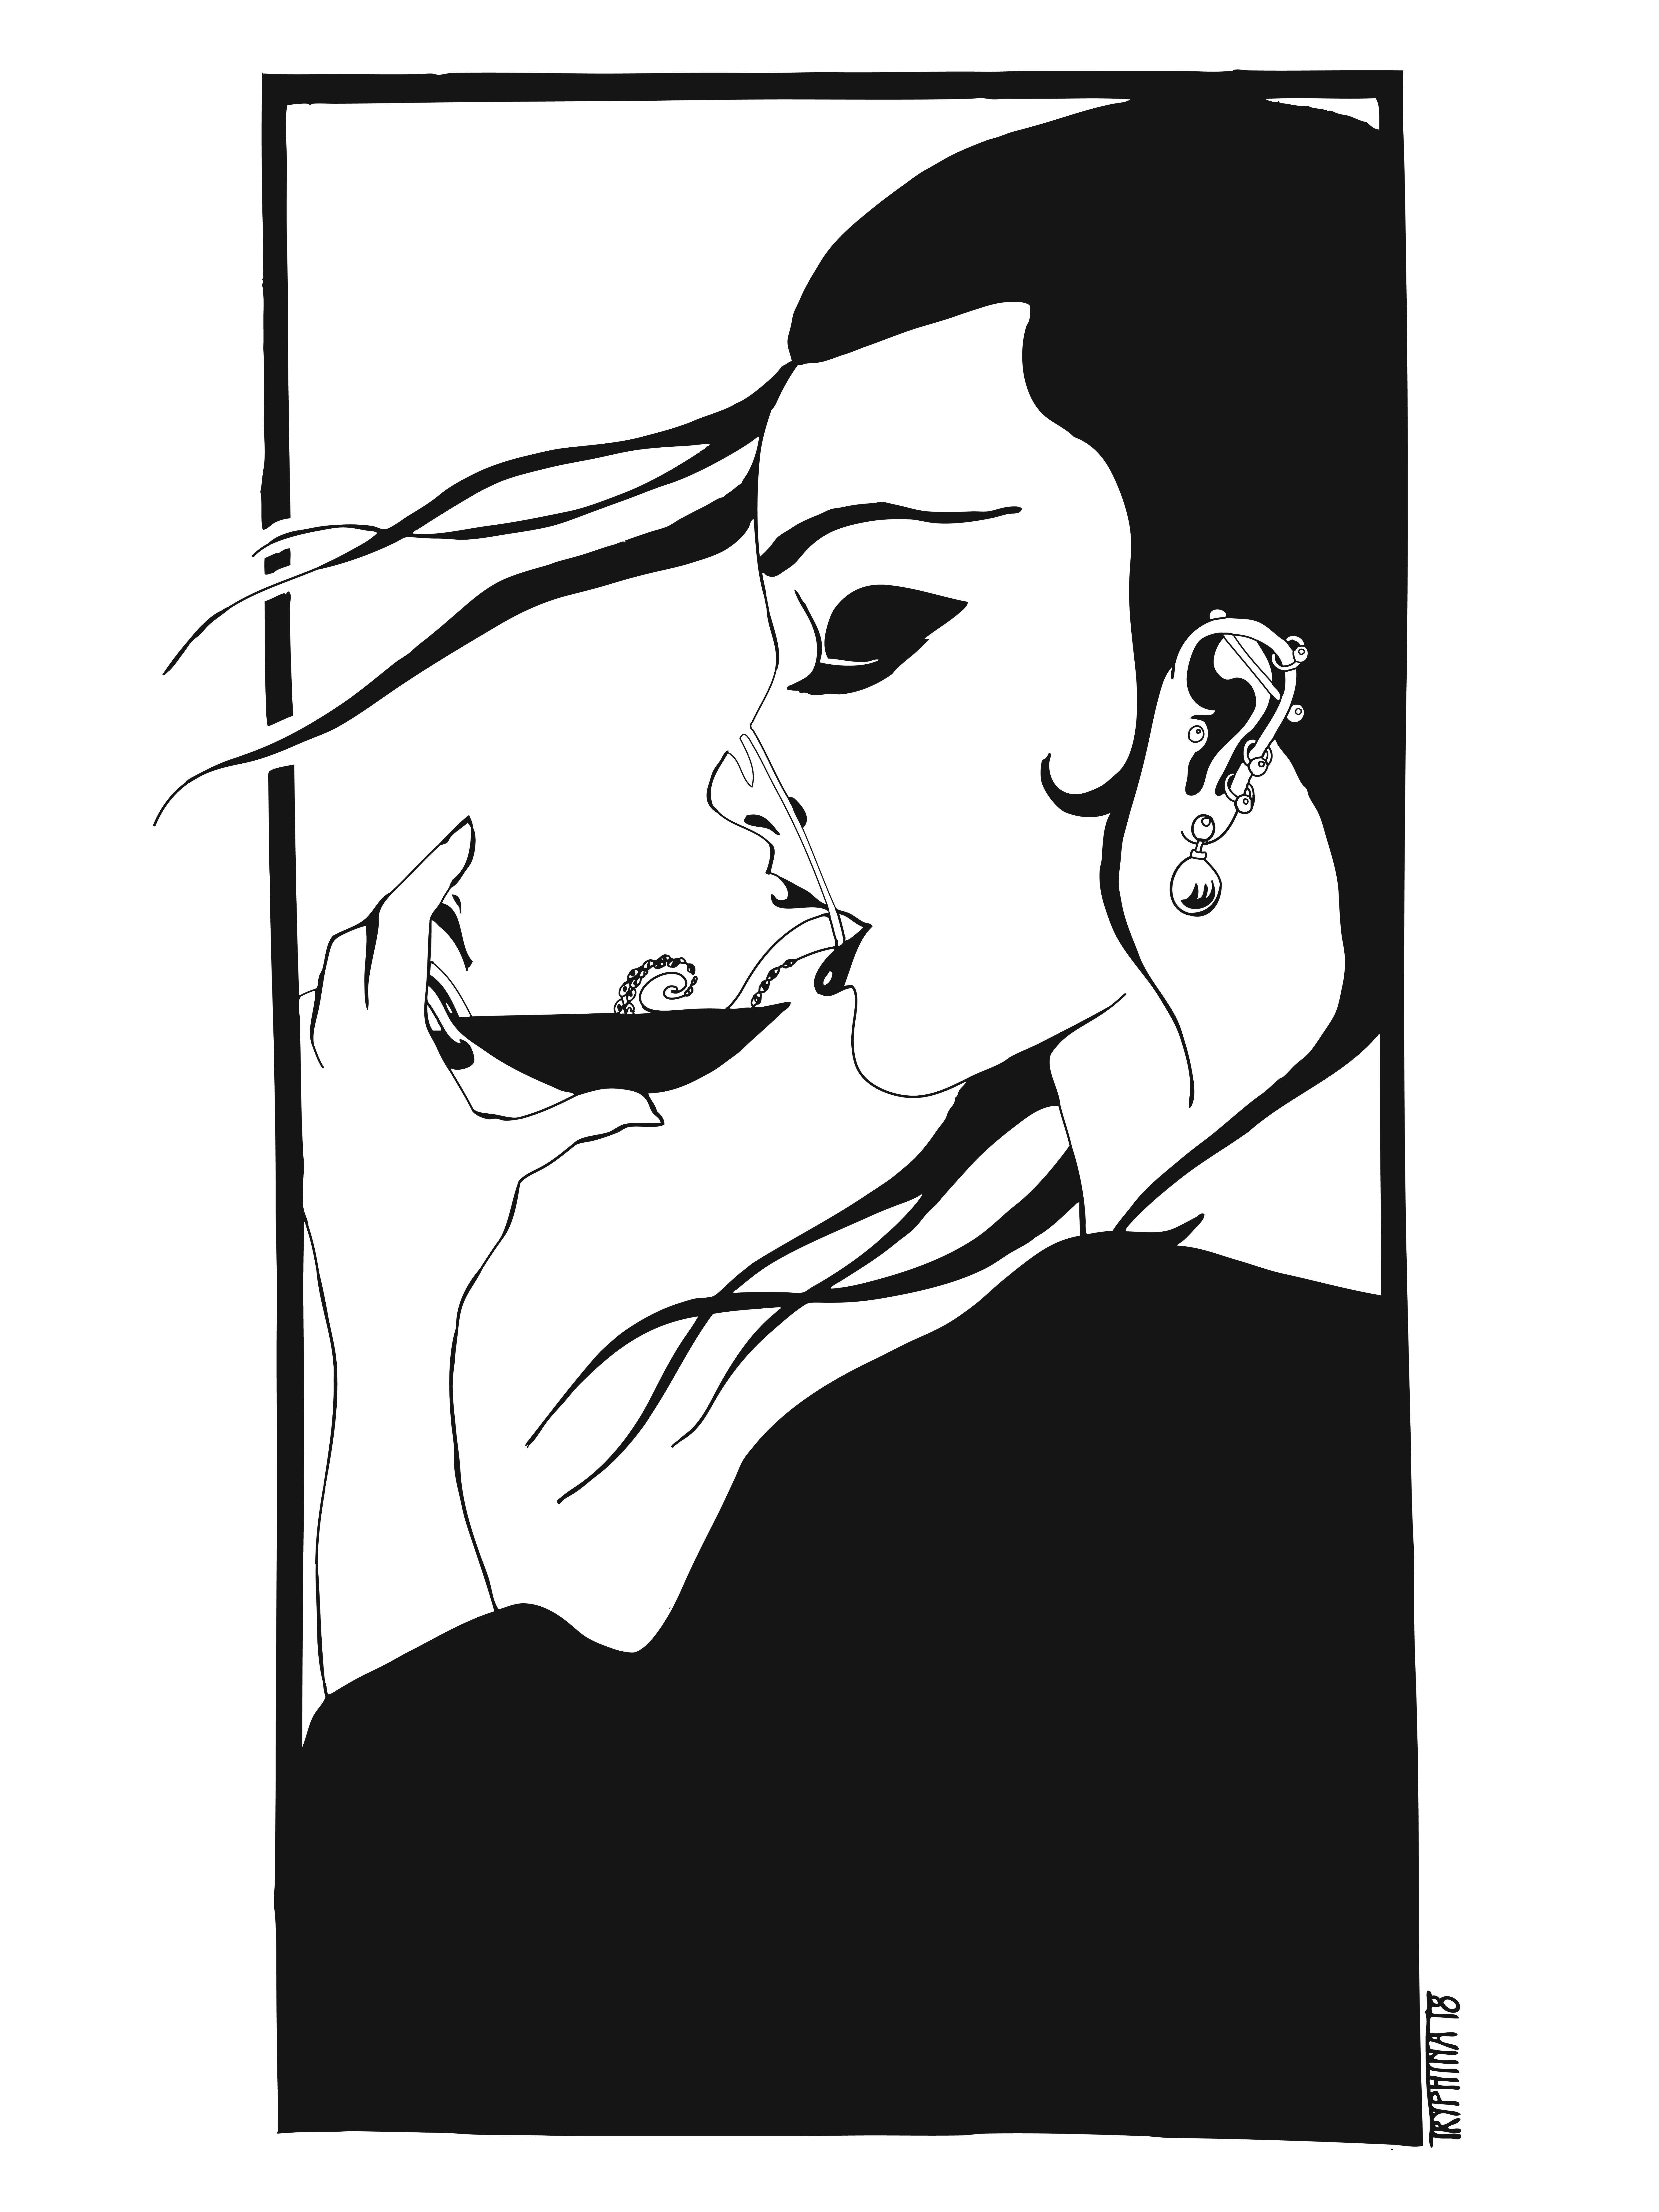 Ink painting od a woman facing sideways, drinking from a wine glass with a tentacle tongue.